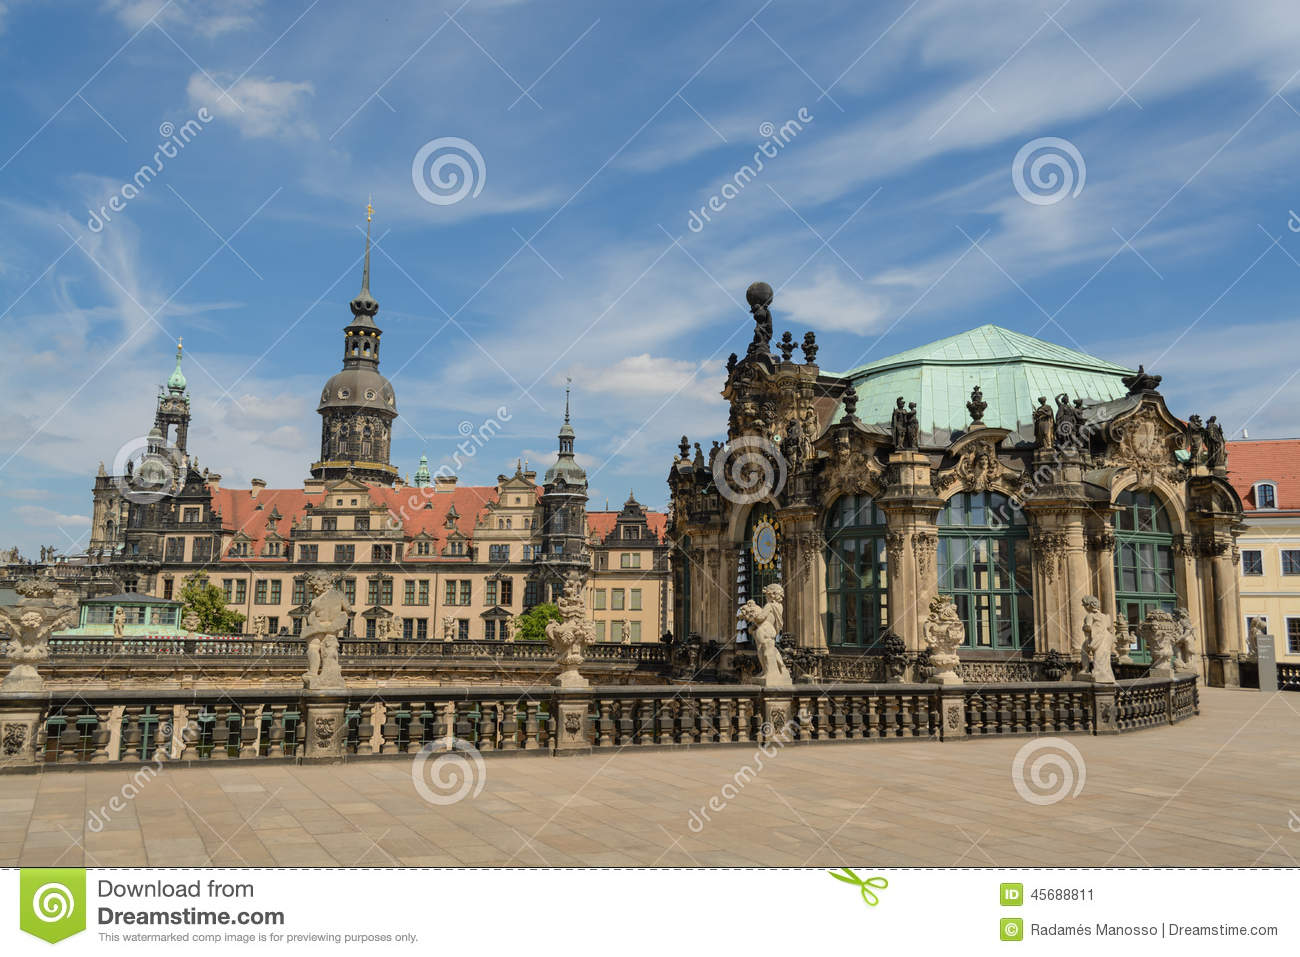 Dresden Castle and the Zinger